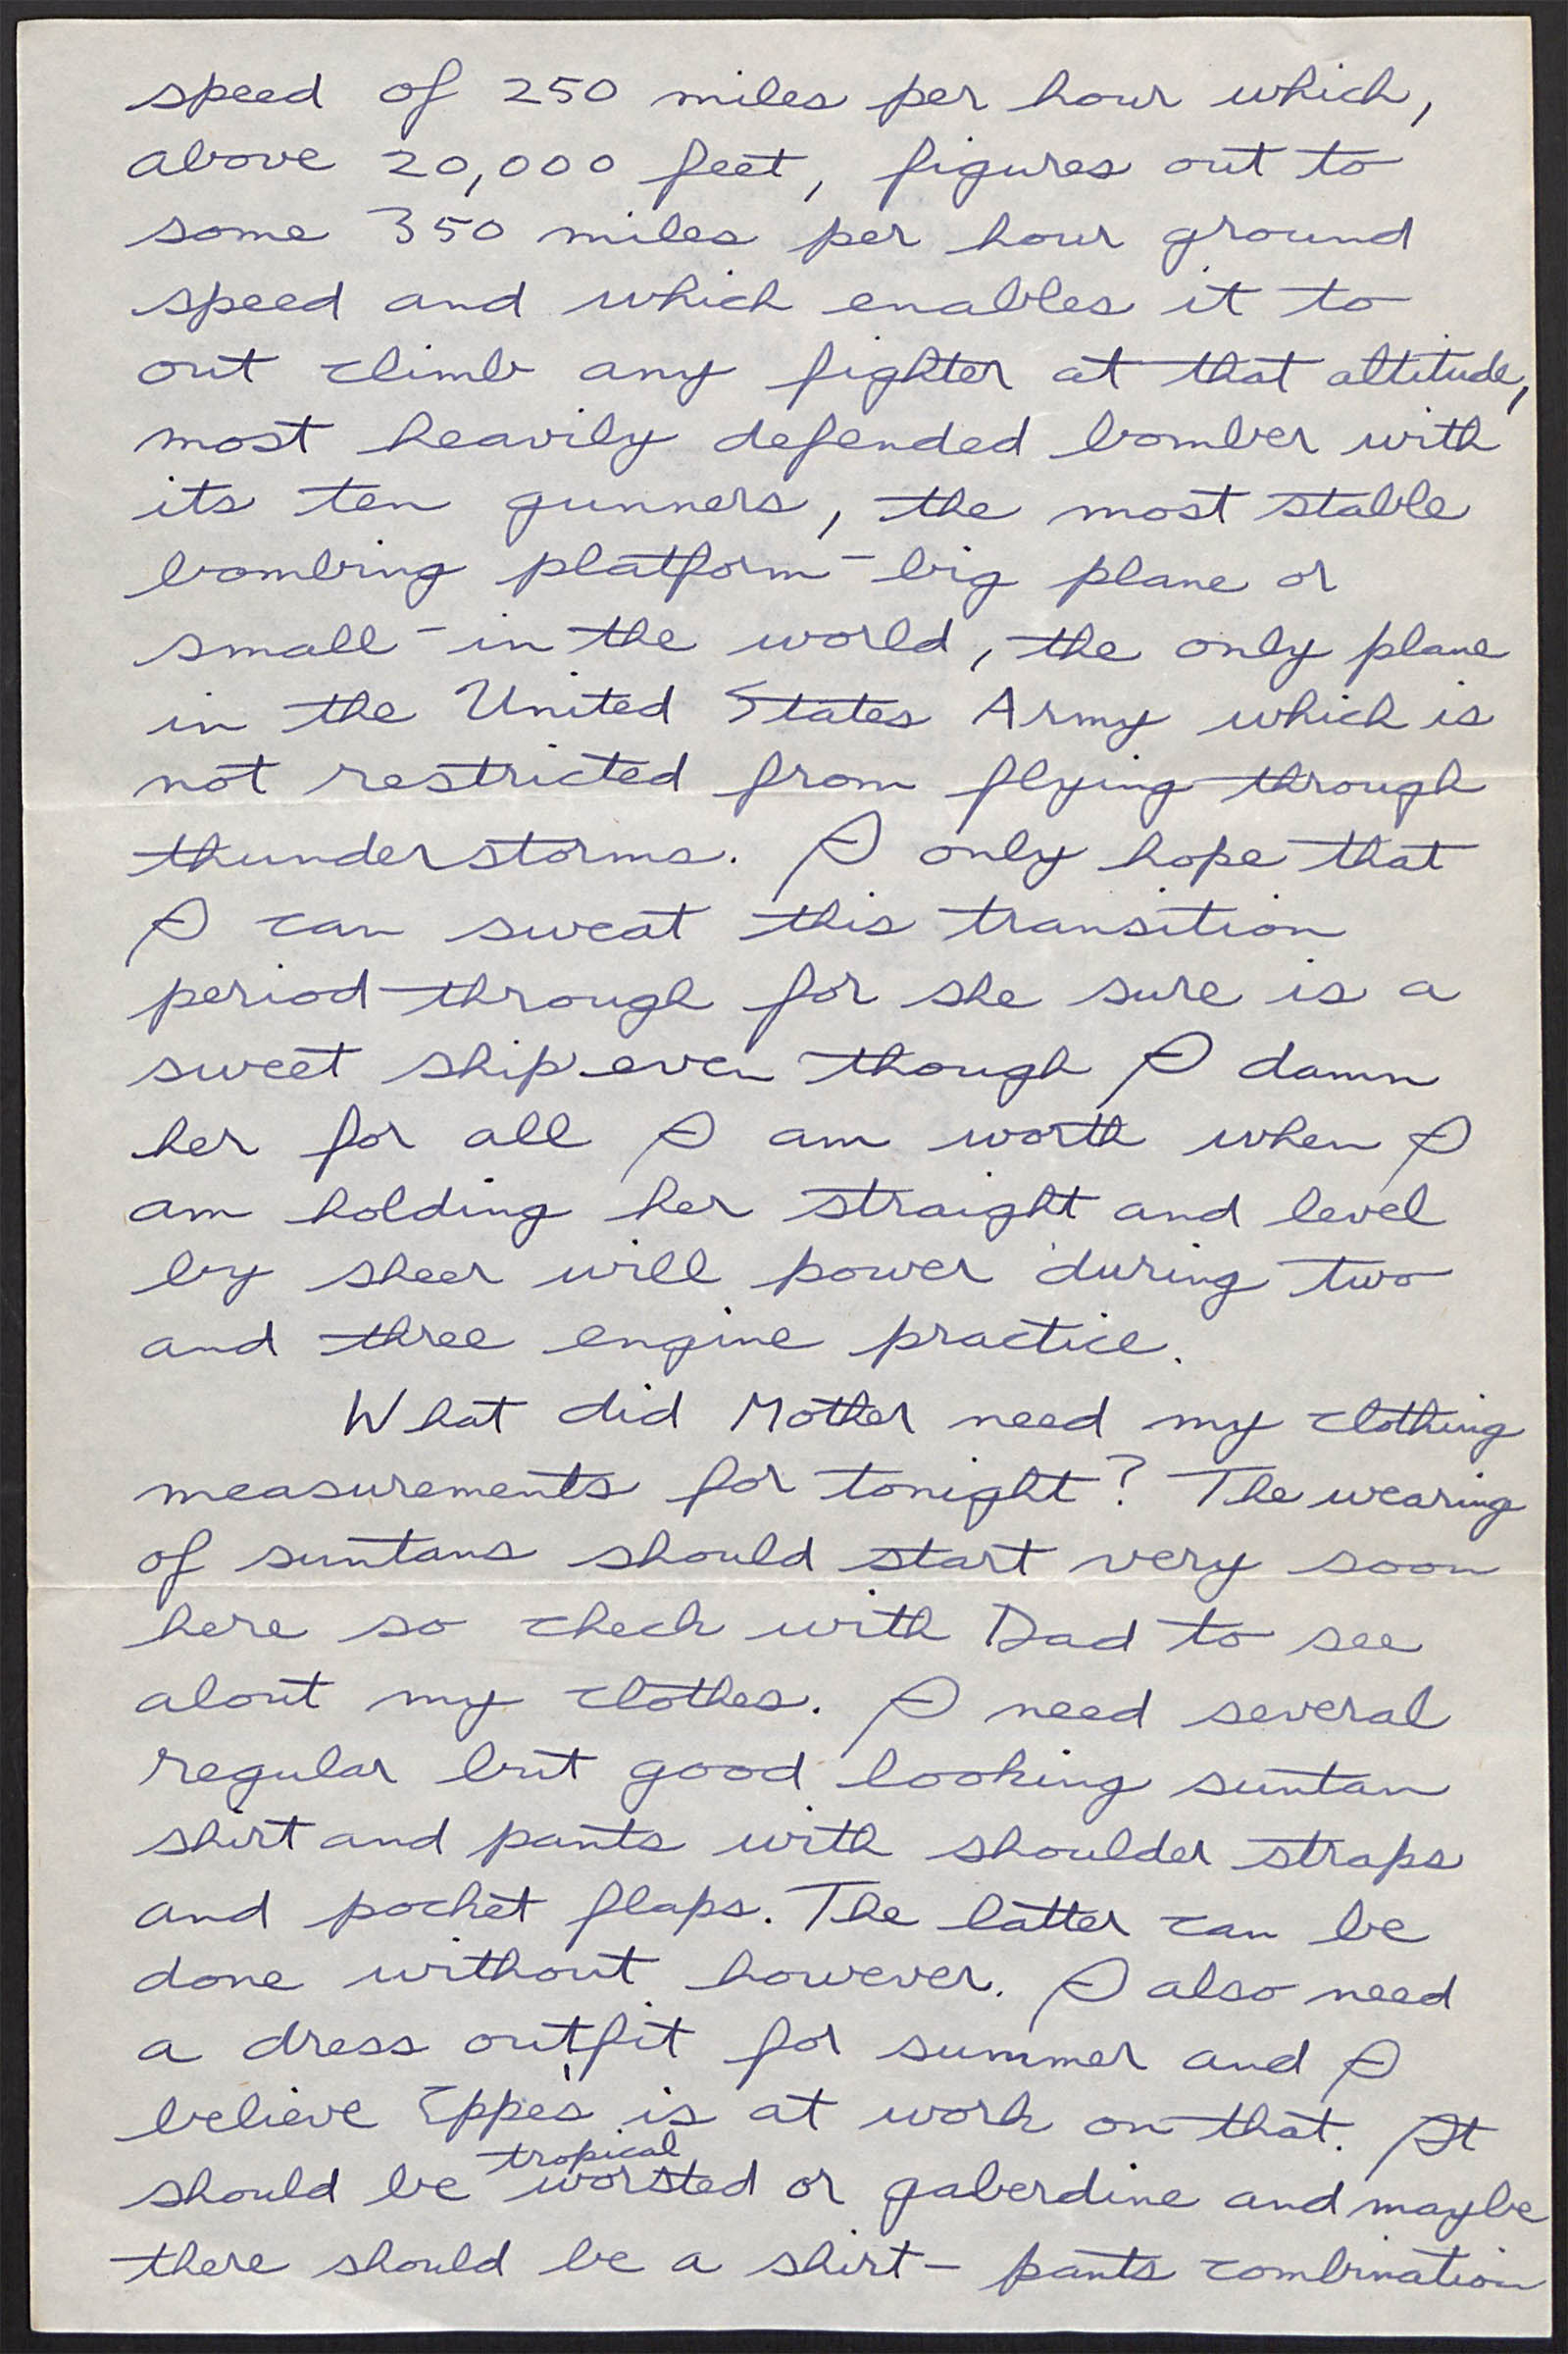 Letter to sister Bernice_April 3_1944_first flight in B-17_Page2